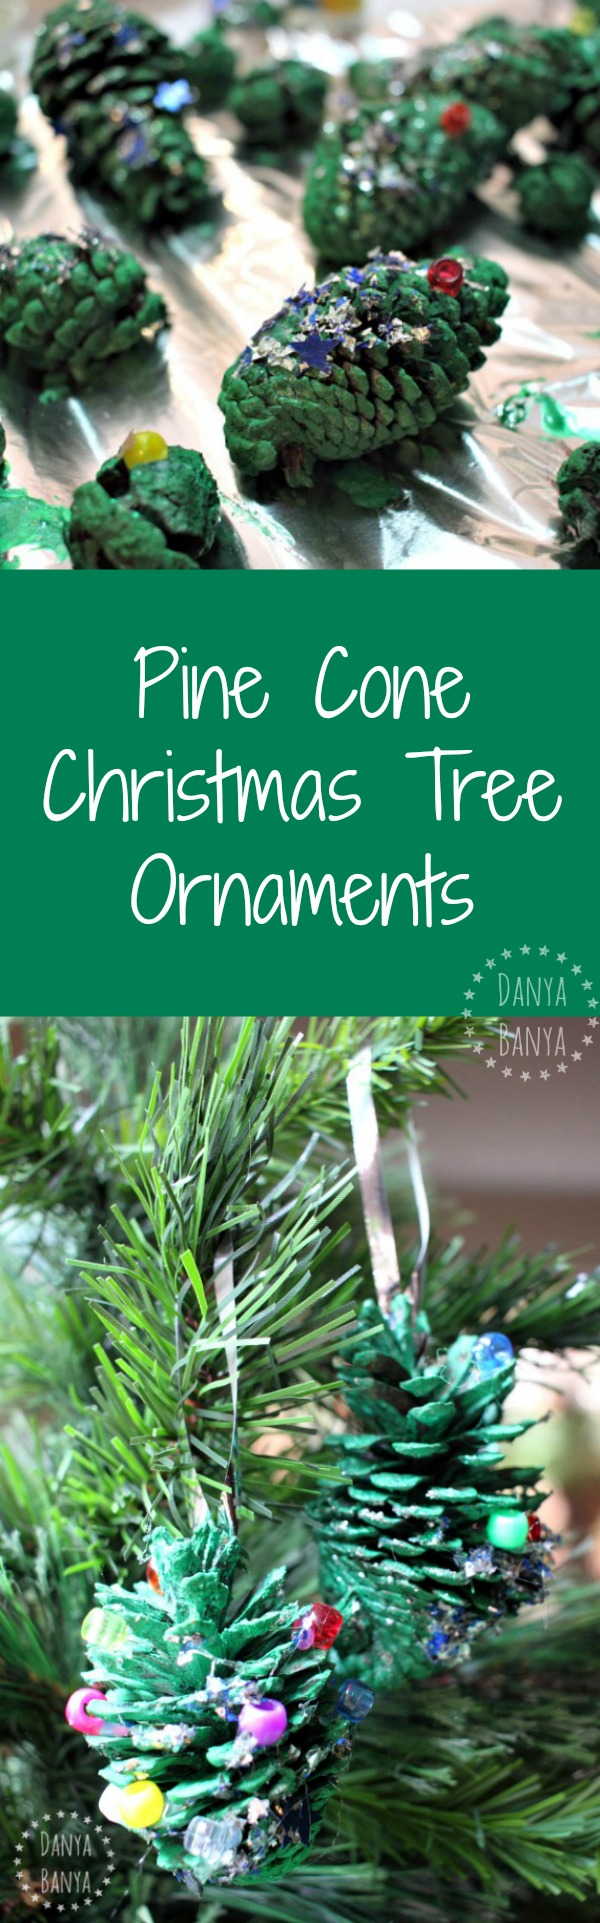 Pine Cone Christmas Tree Ornaments - these would make a great holiday craft for the kids!